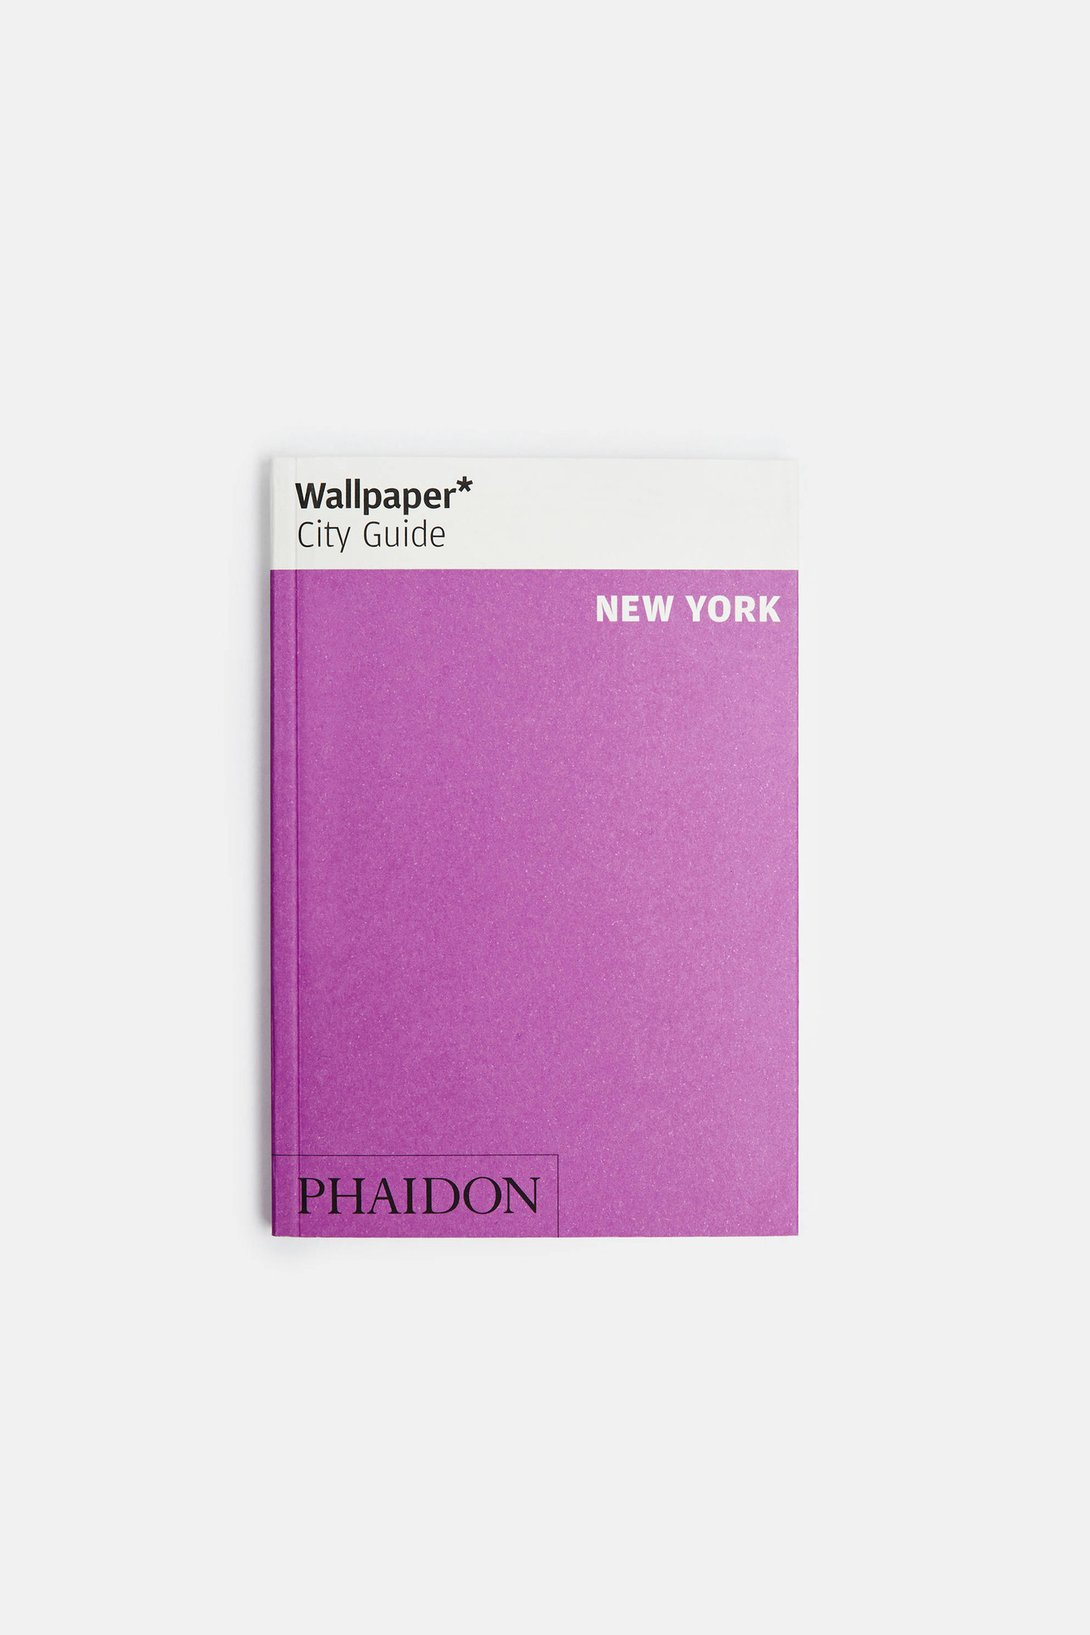 Wallpaper Nyc Guide